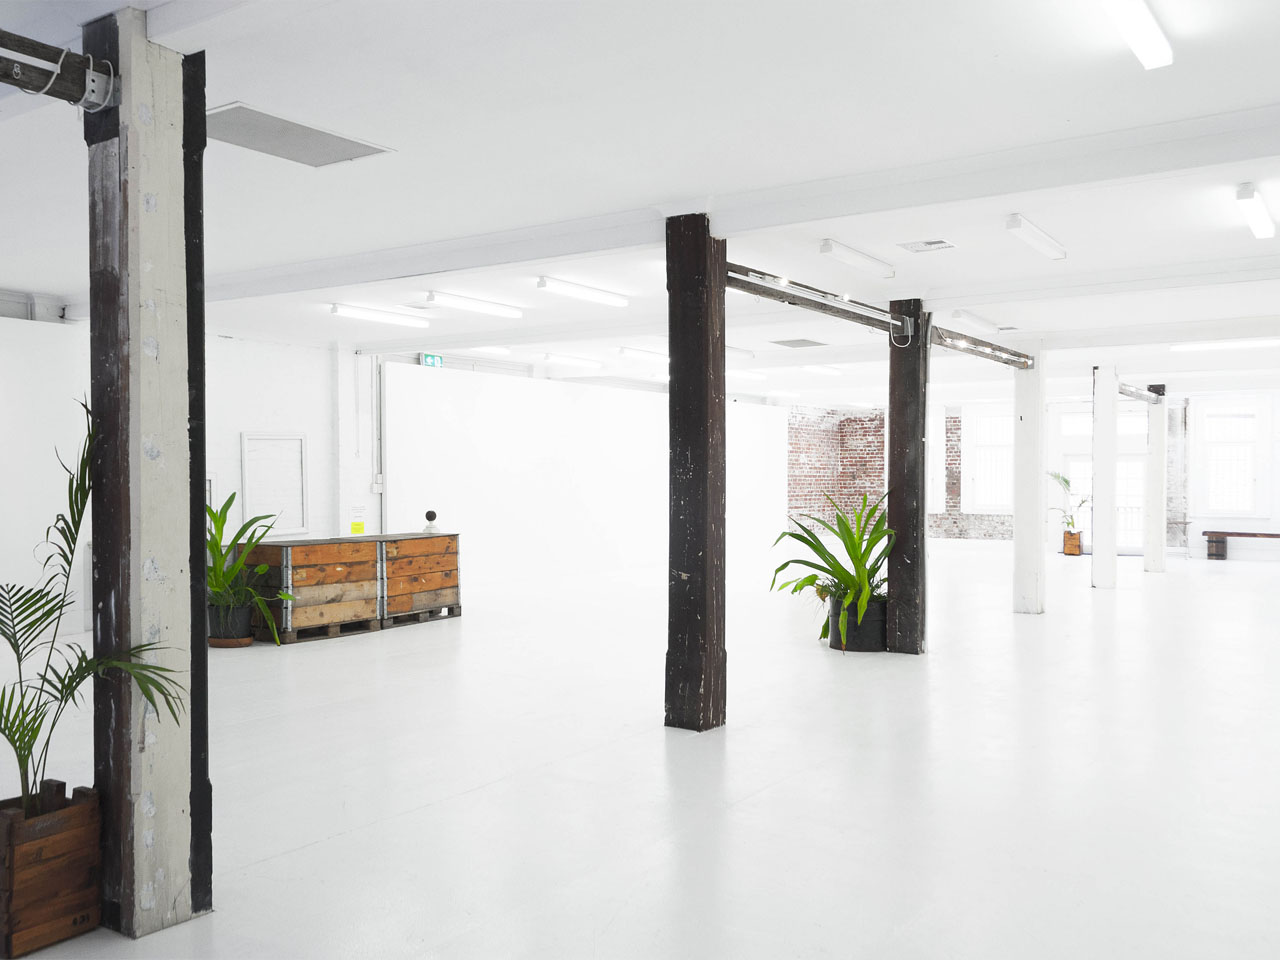 open gallery space with wooden columns